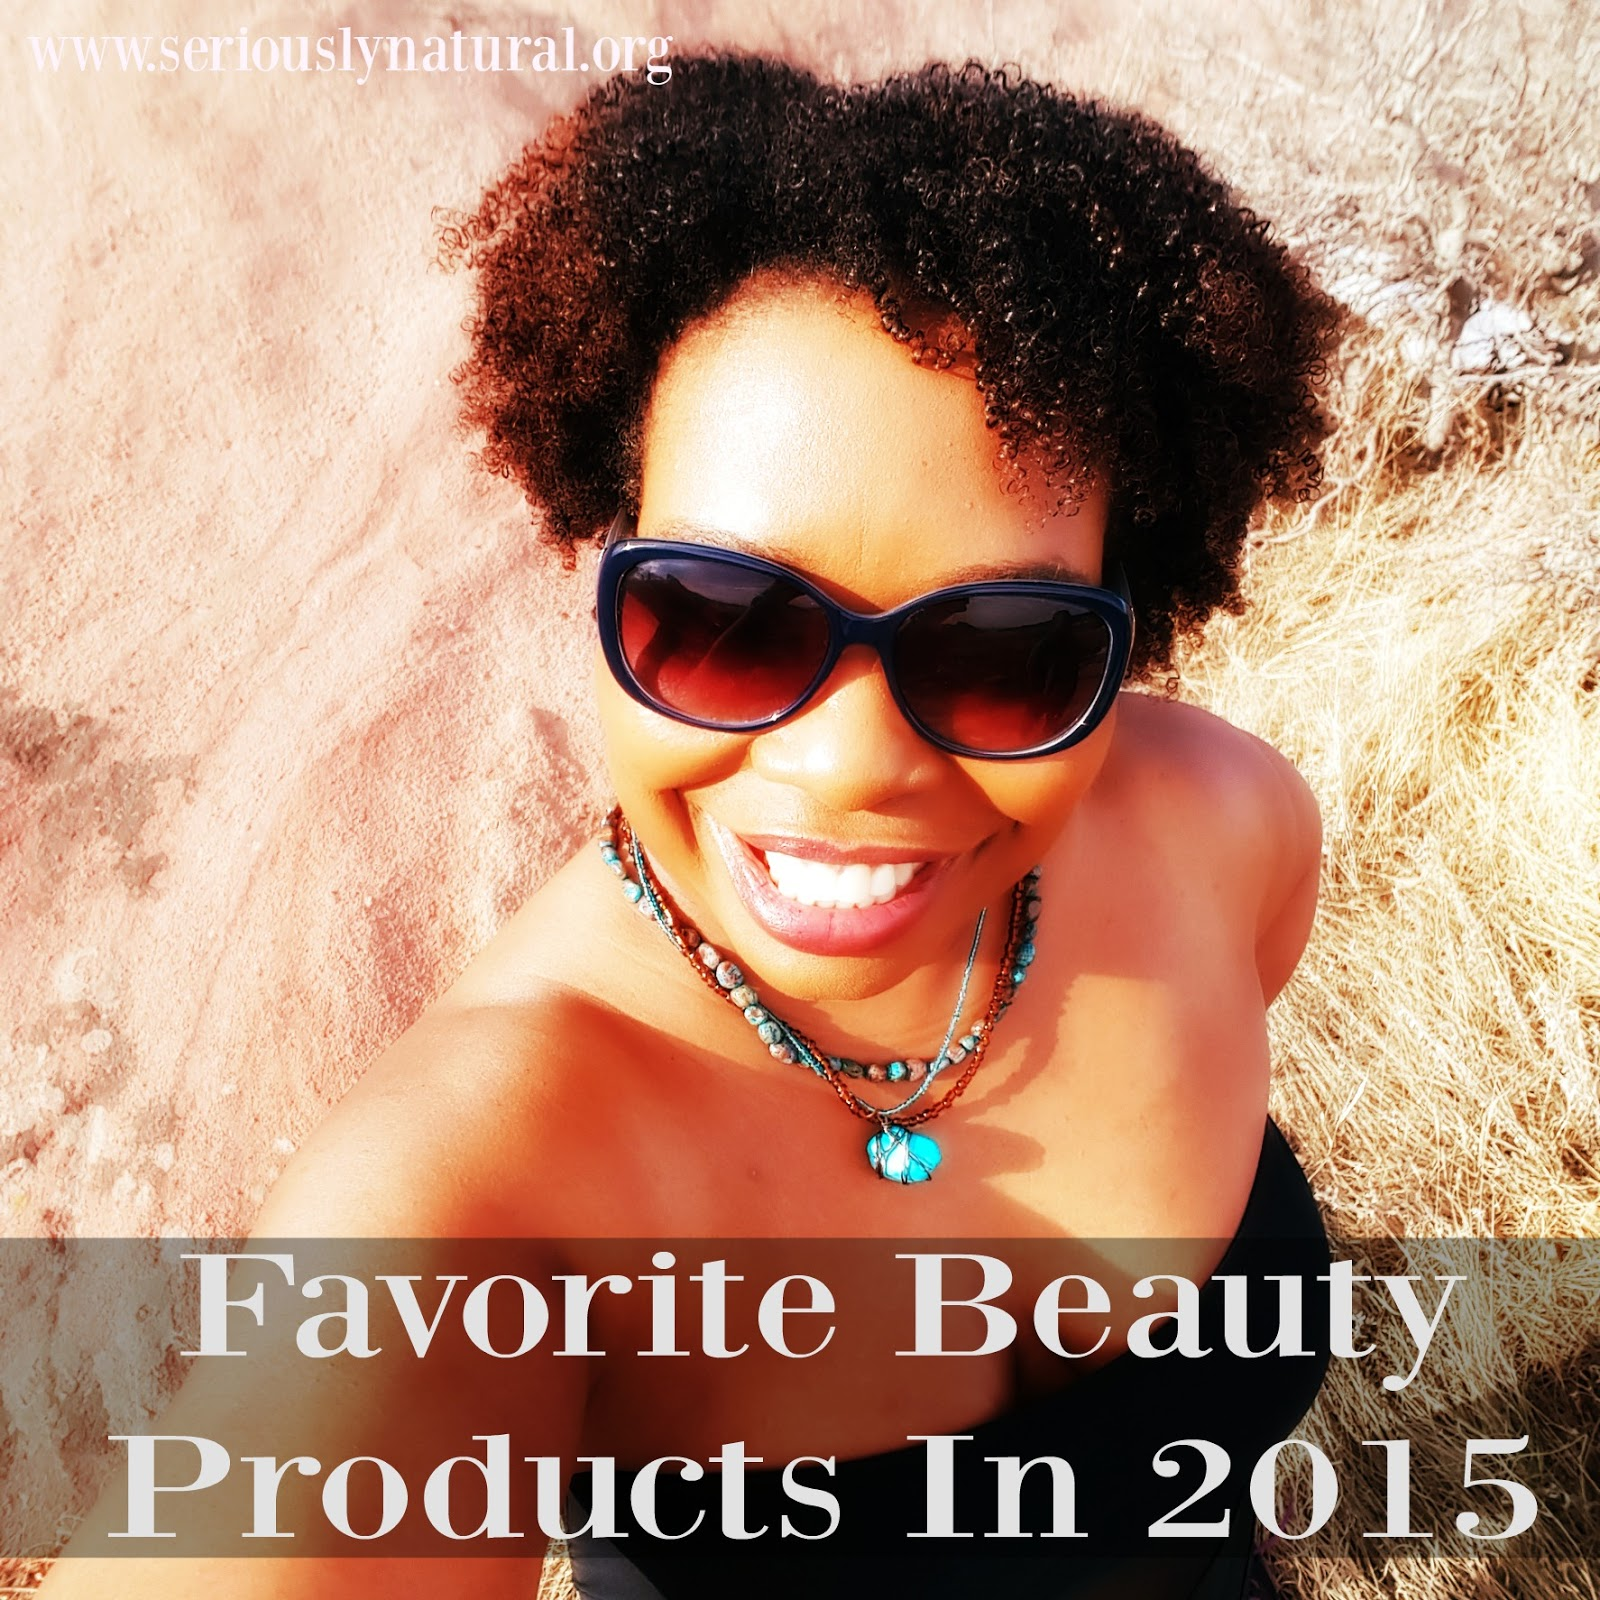 Favorite Beauty Products In 2015